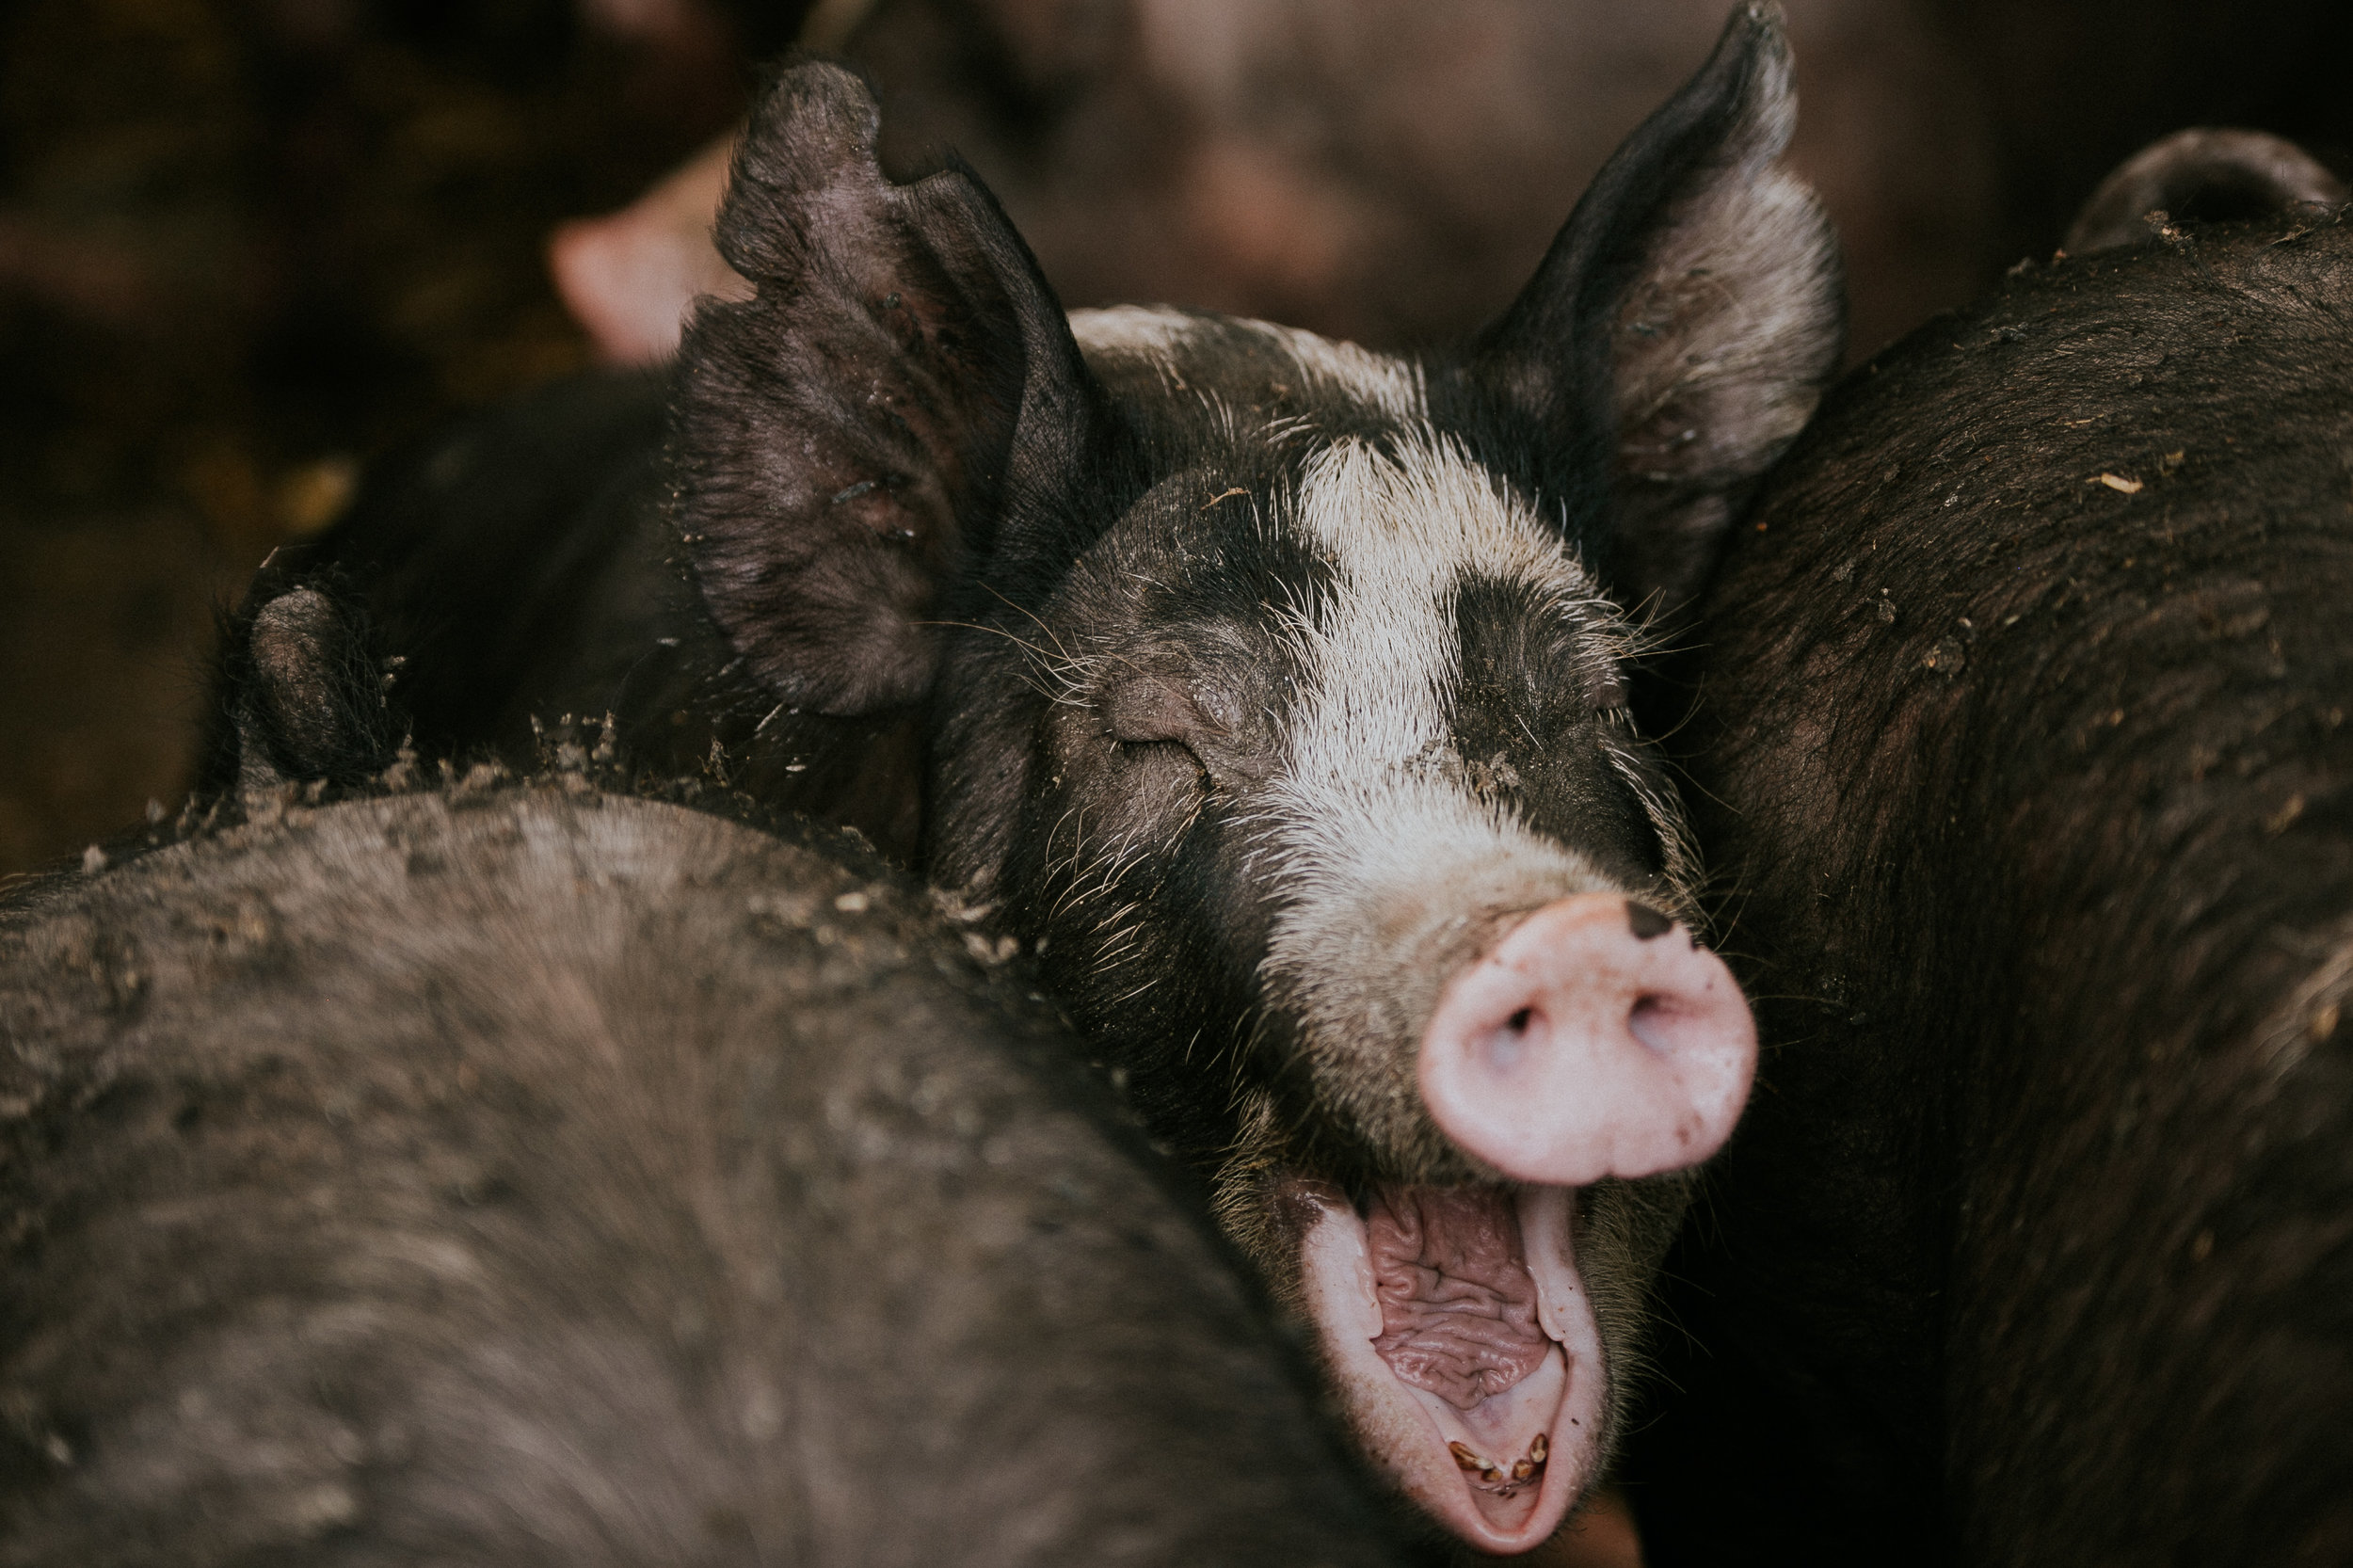 All antibiotics that could be used in pigs have specific withdrawal periods, during which the animal is not allowed to be harvested, as that antibiotic is still in the system. Because we keep careful records, we can ensure that animals are treated when need be, and that antibiotics never reach the food system.